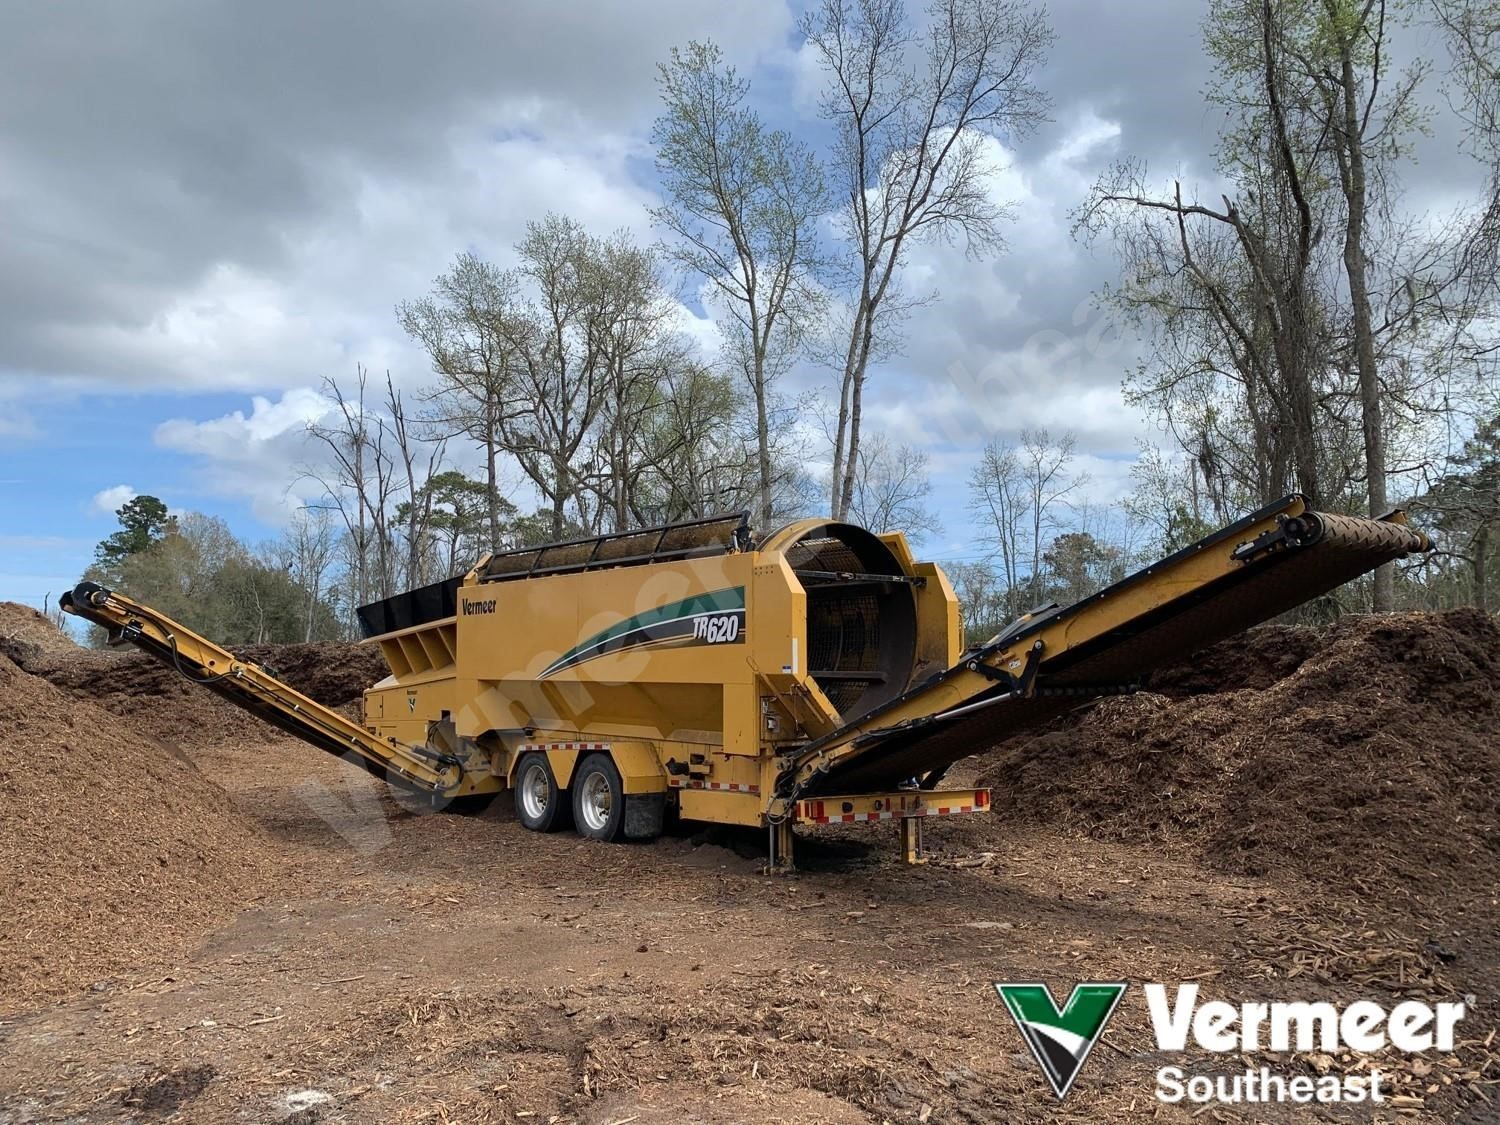 Used, 2015, VERMEER, TR620, Aggregate Equipment - Screen